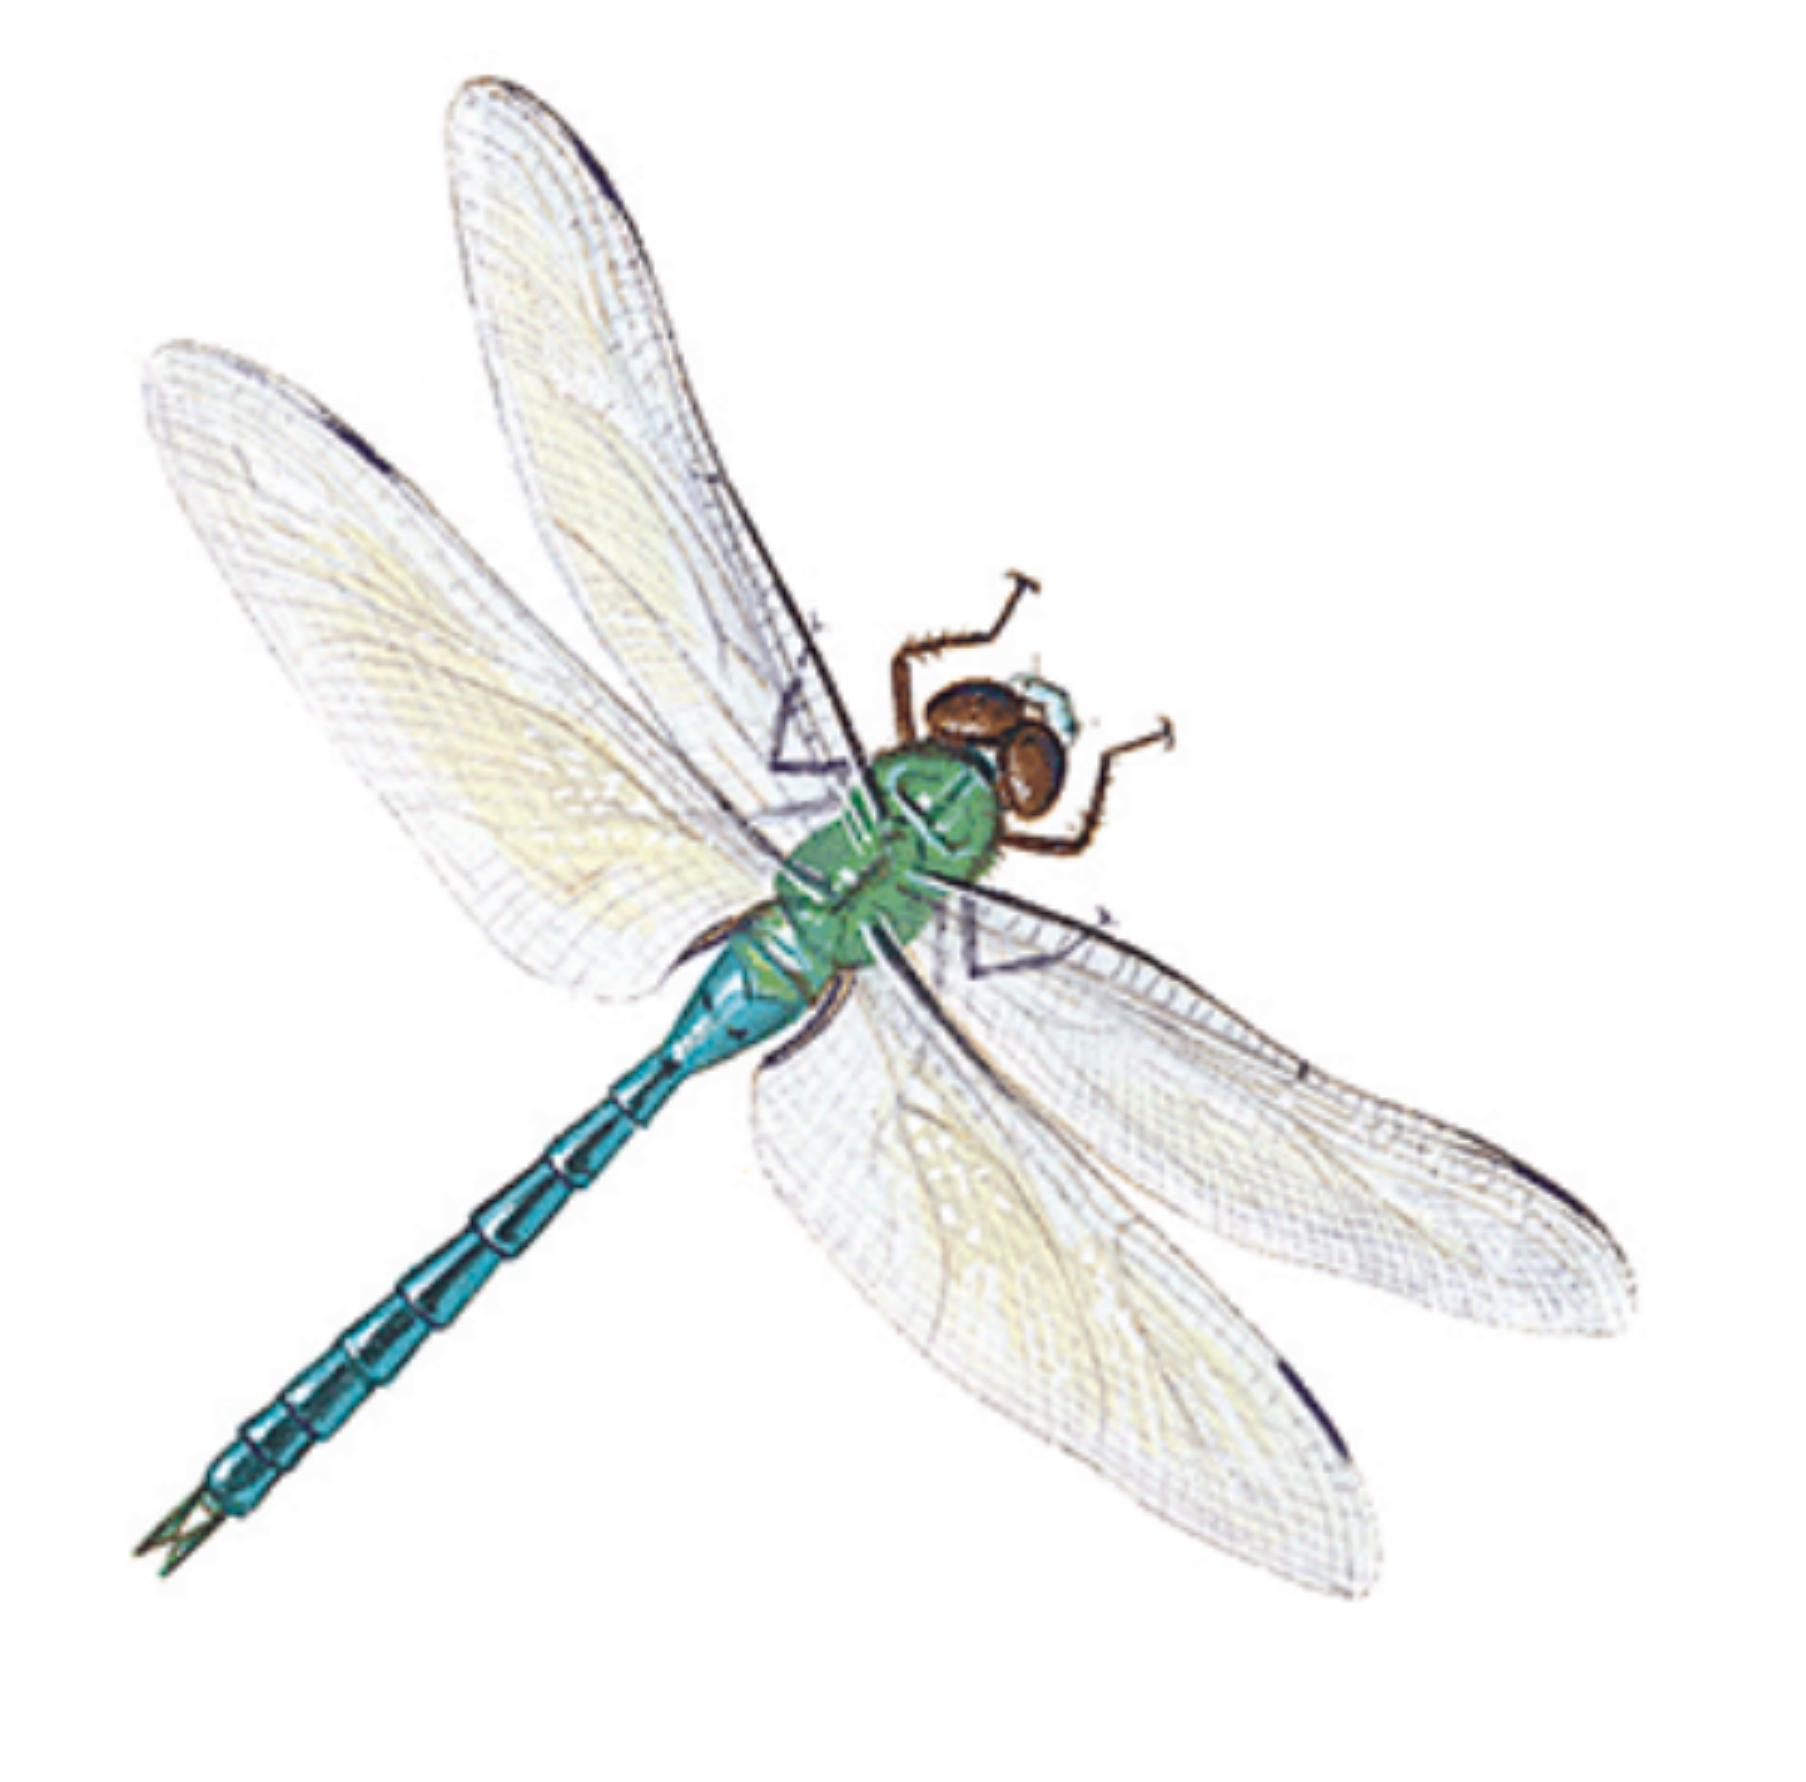 Is Your Business View Dragonfly?